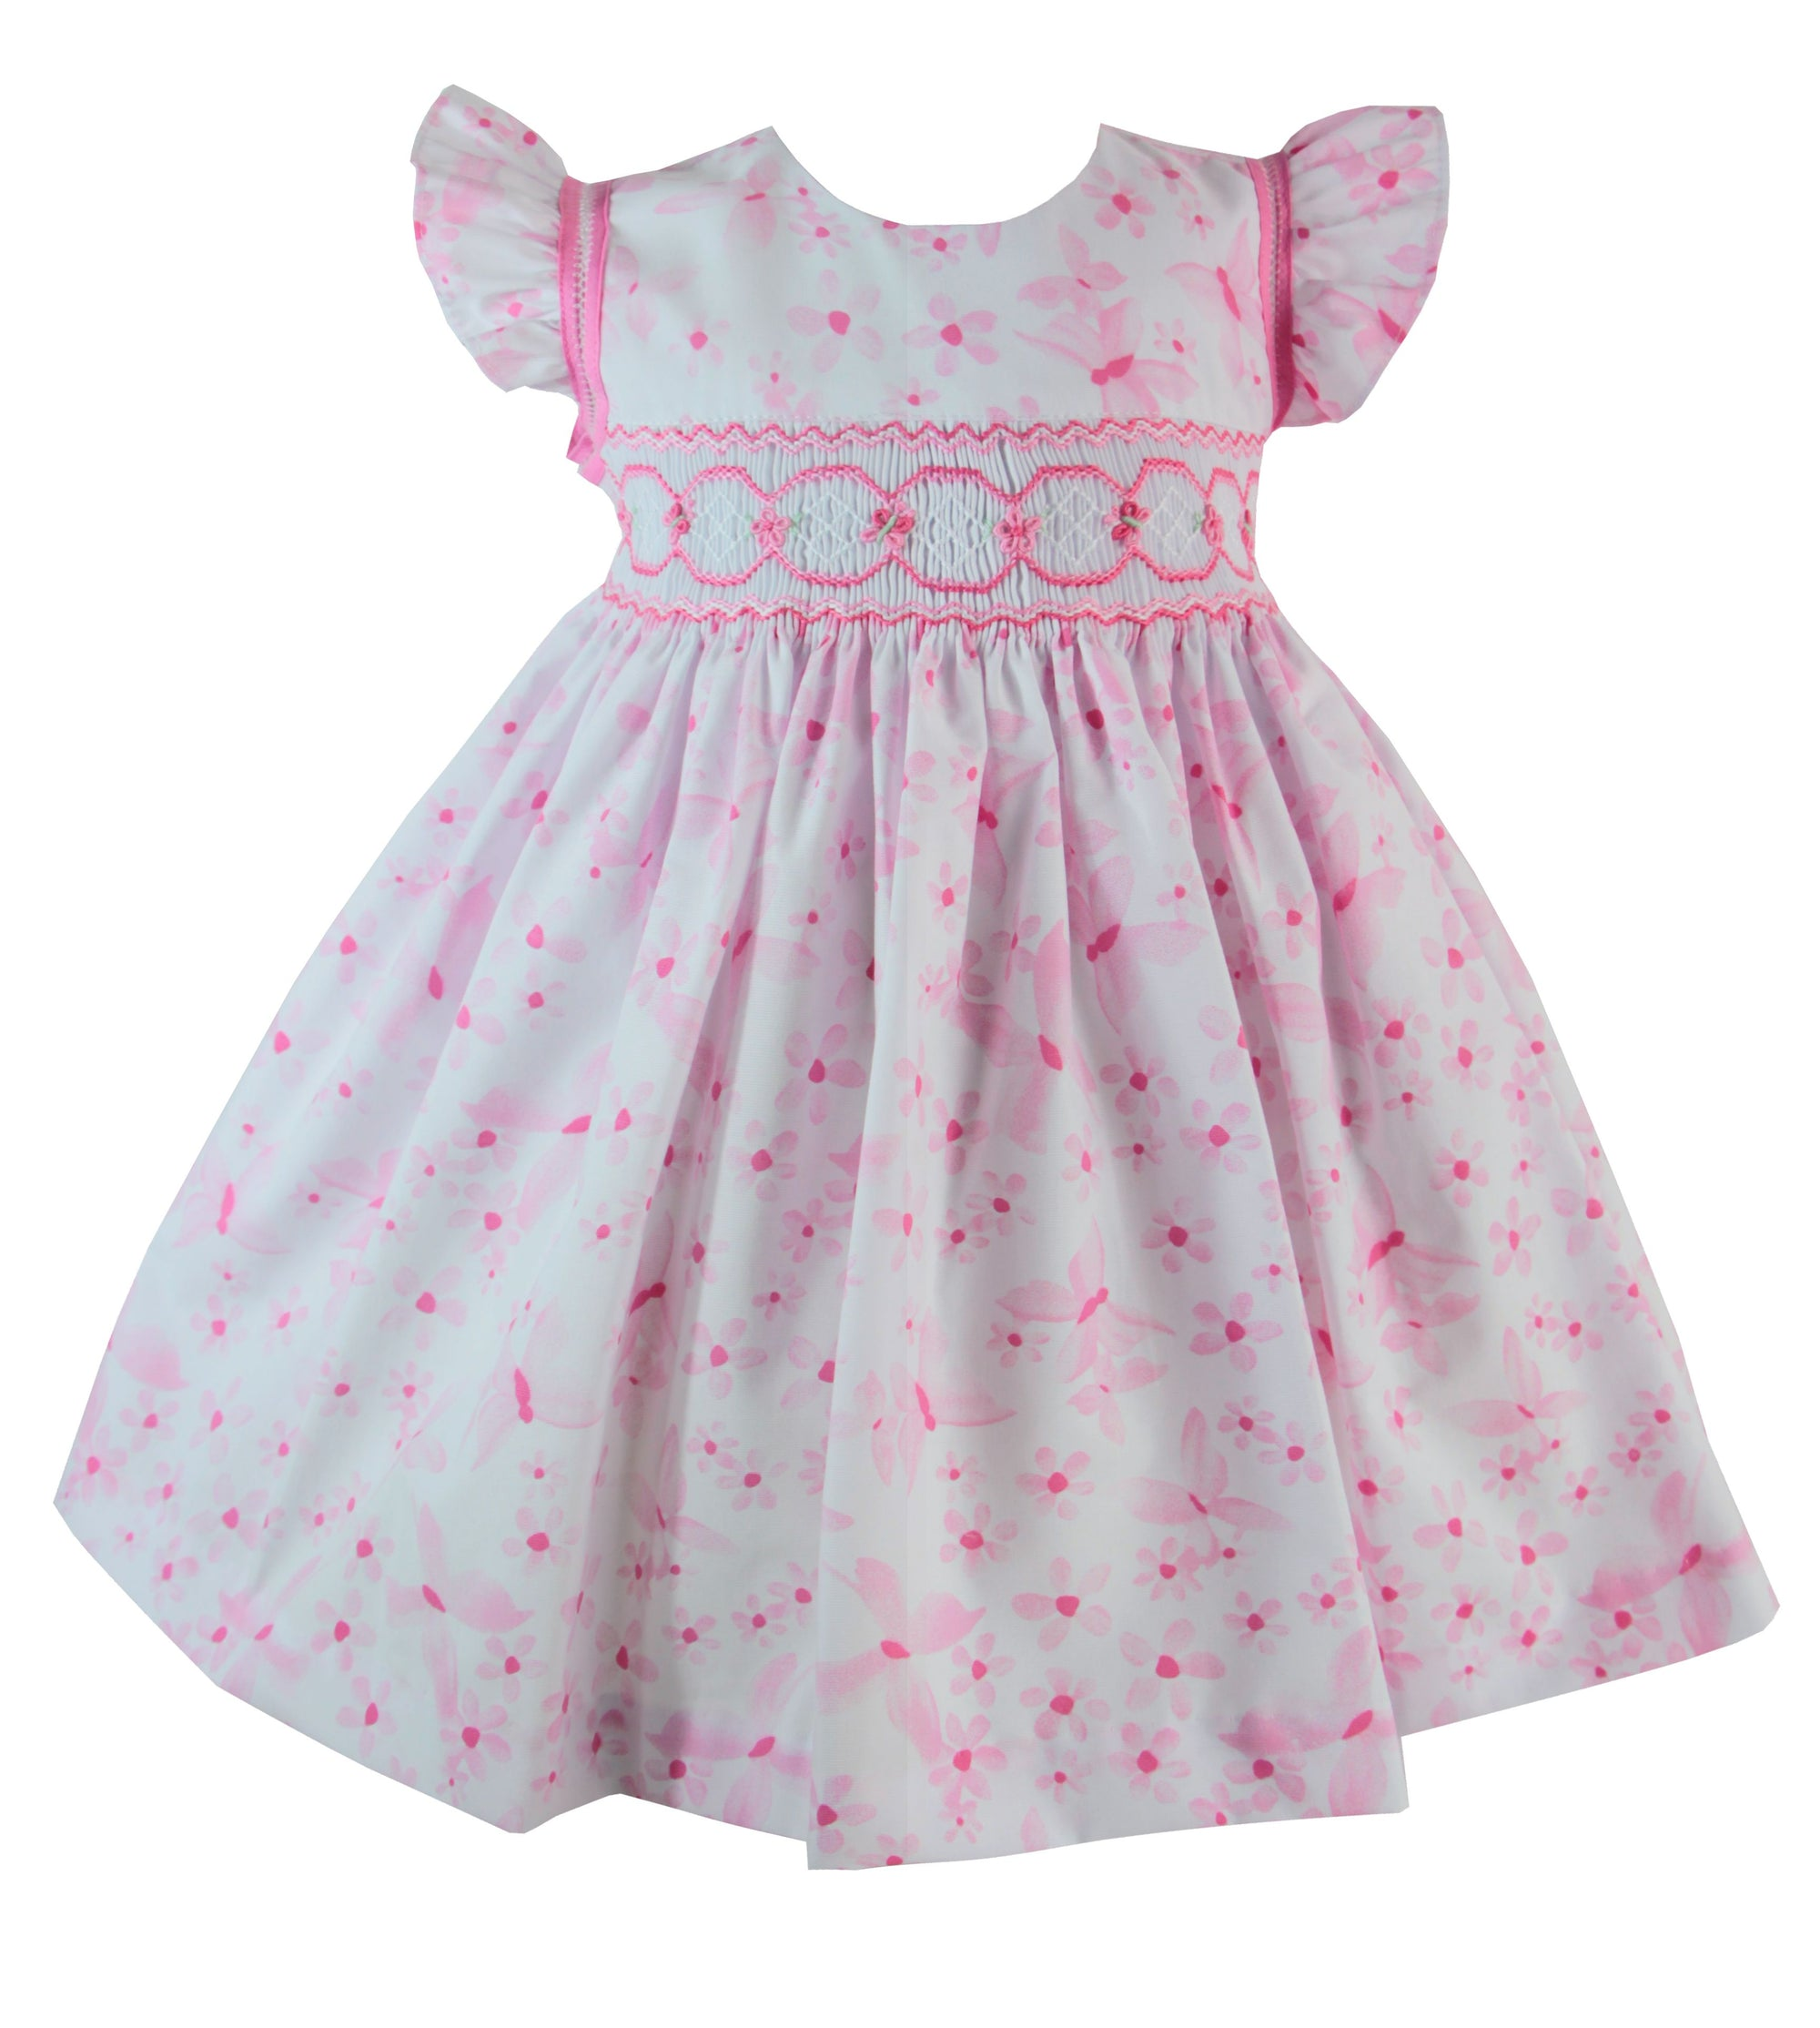 PRETTY ORIGINALS BD02023 FLORAL PRINT DRESS WITH SMOCKED BODICE PINK